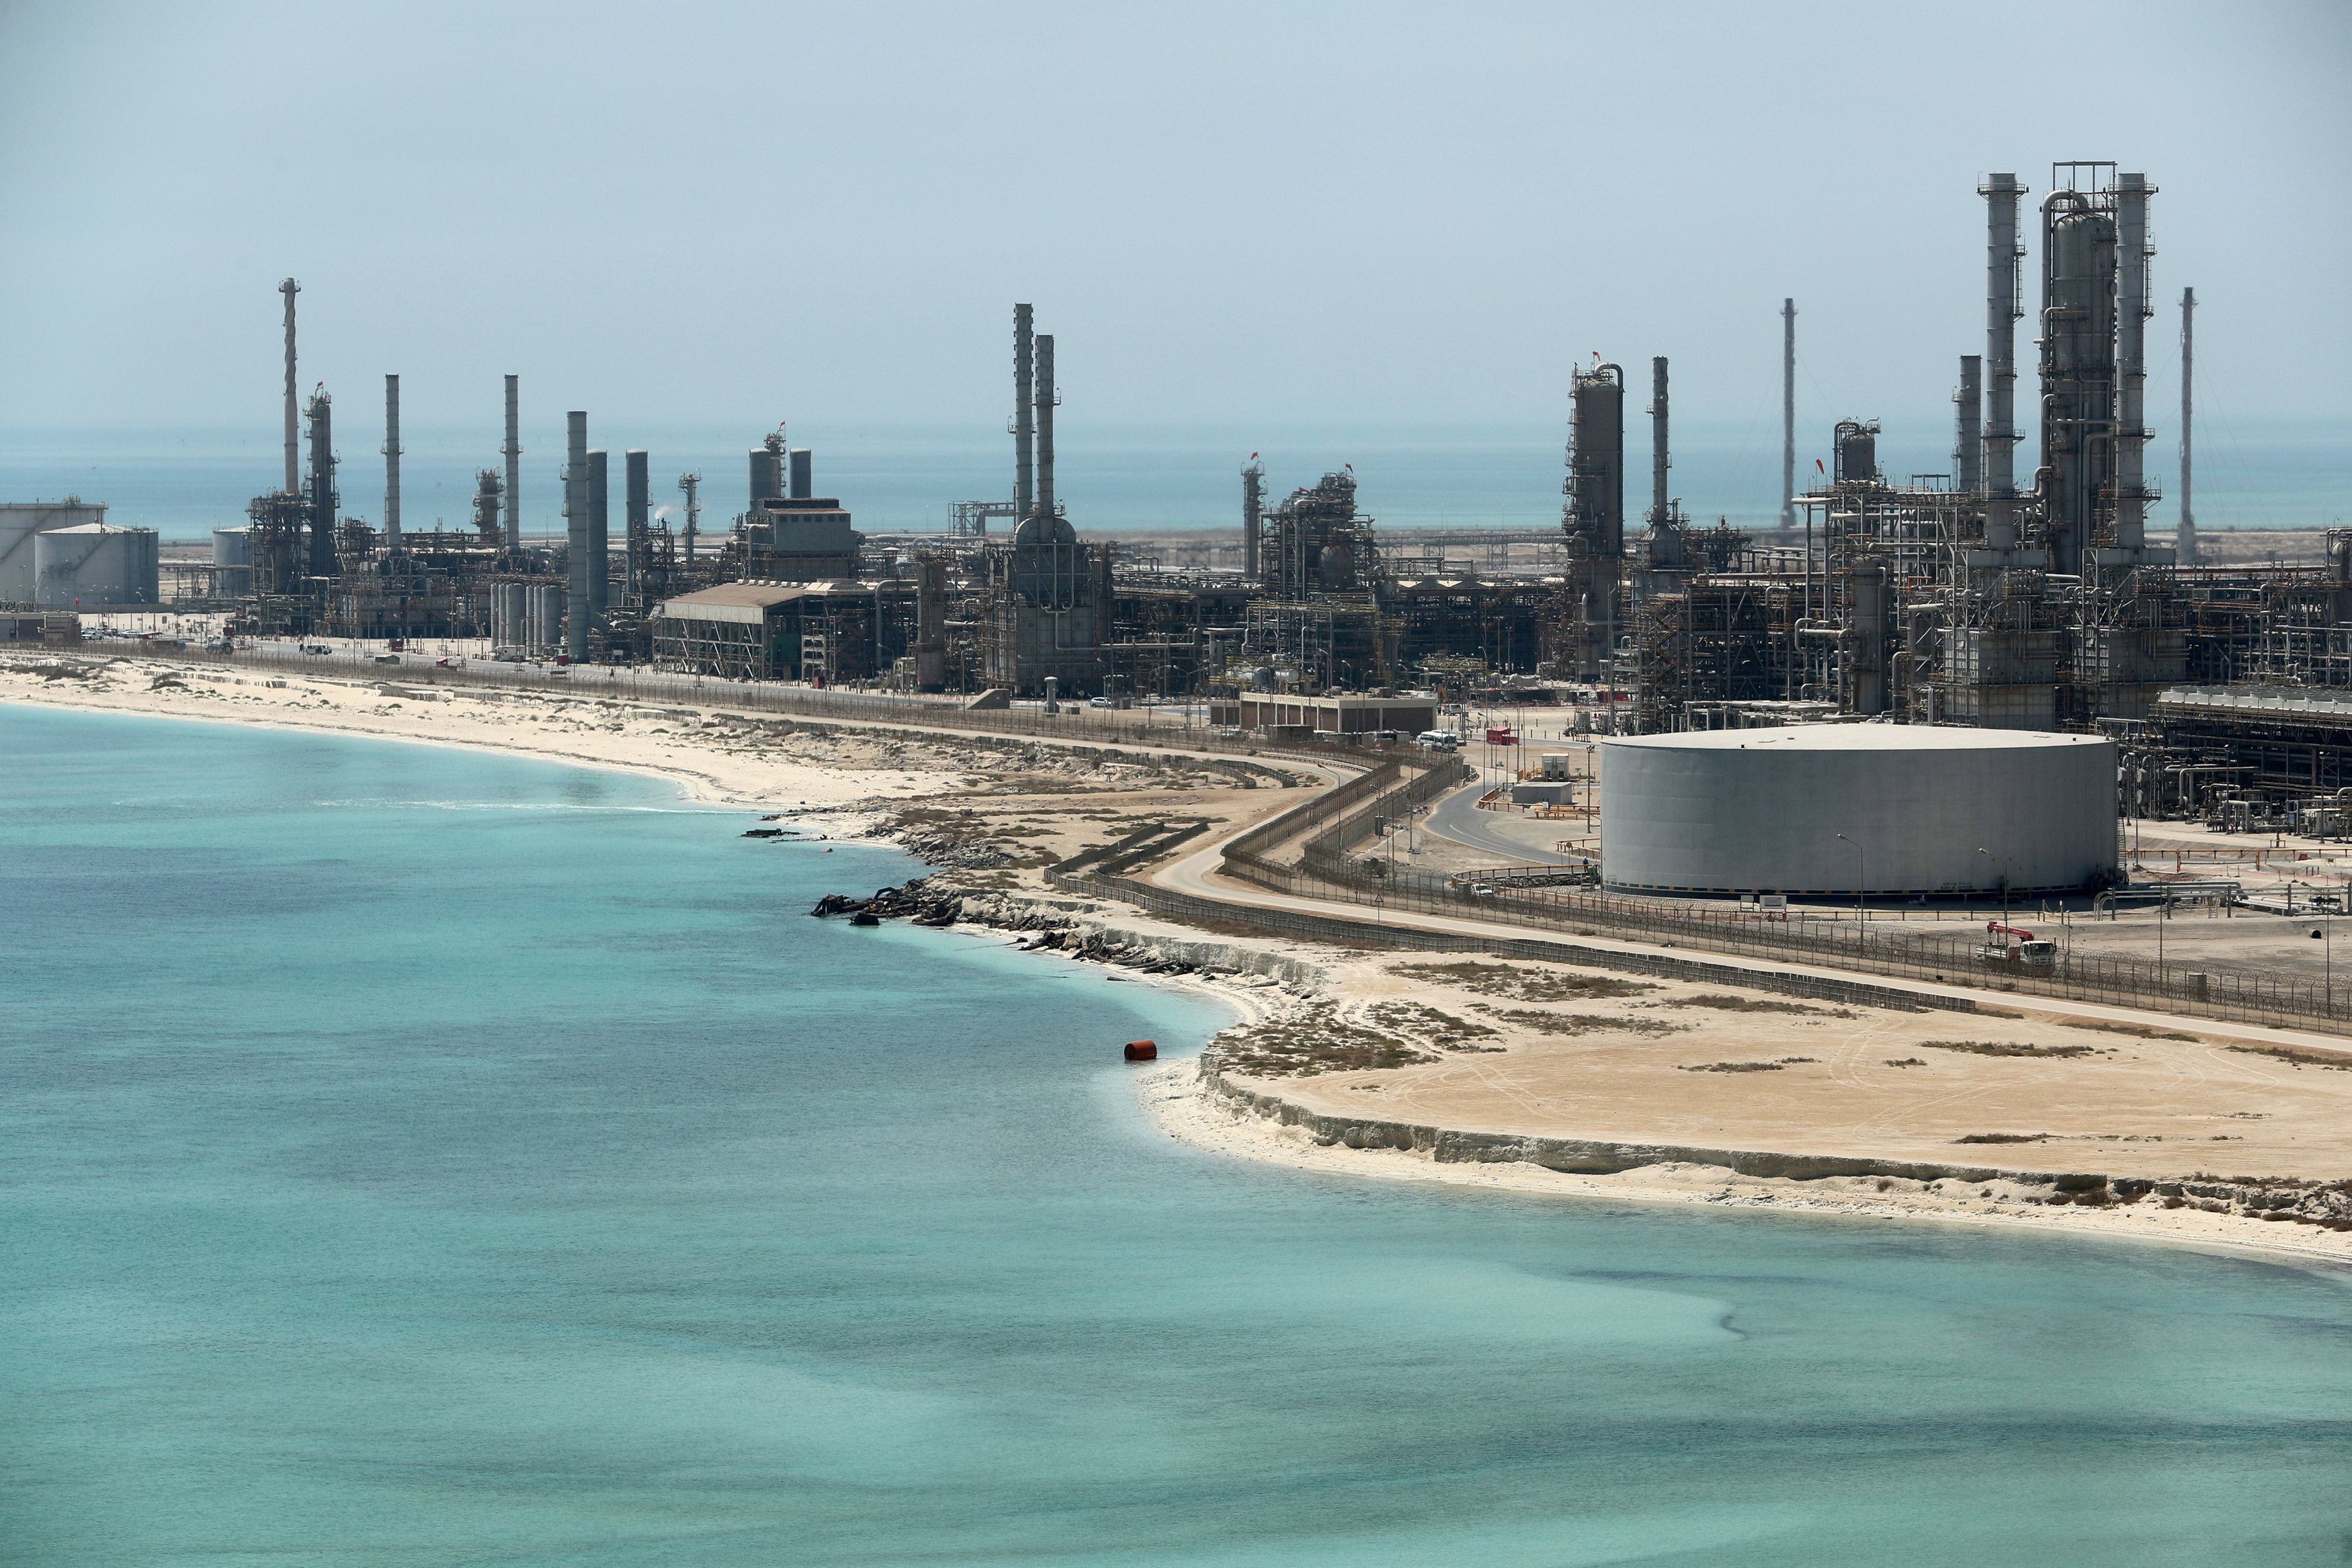 FILE PHOTO: General view of Saudi Aramco's Ras Tanura oil refinery and oil terminal in Saudi Arabia May 21, 2018. Picture taken May 21, 2018. REUTERS/Ahmed Jadallah/File Photo